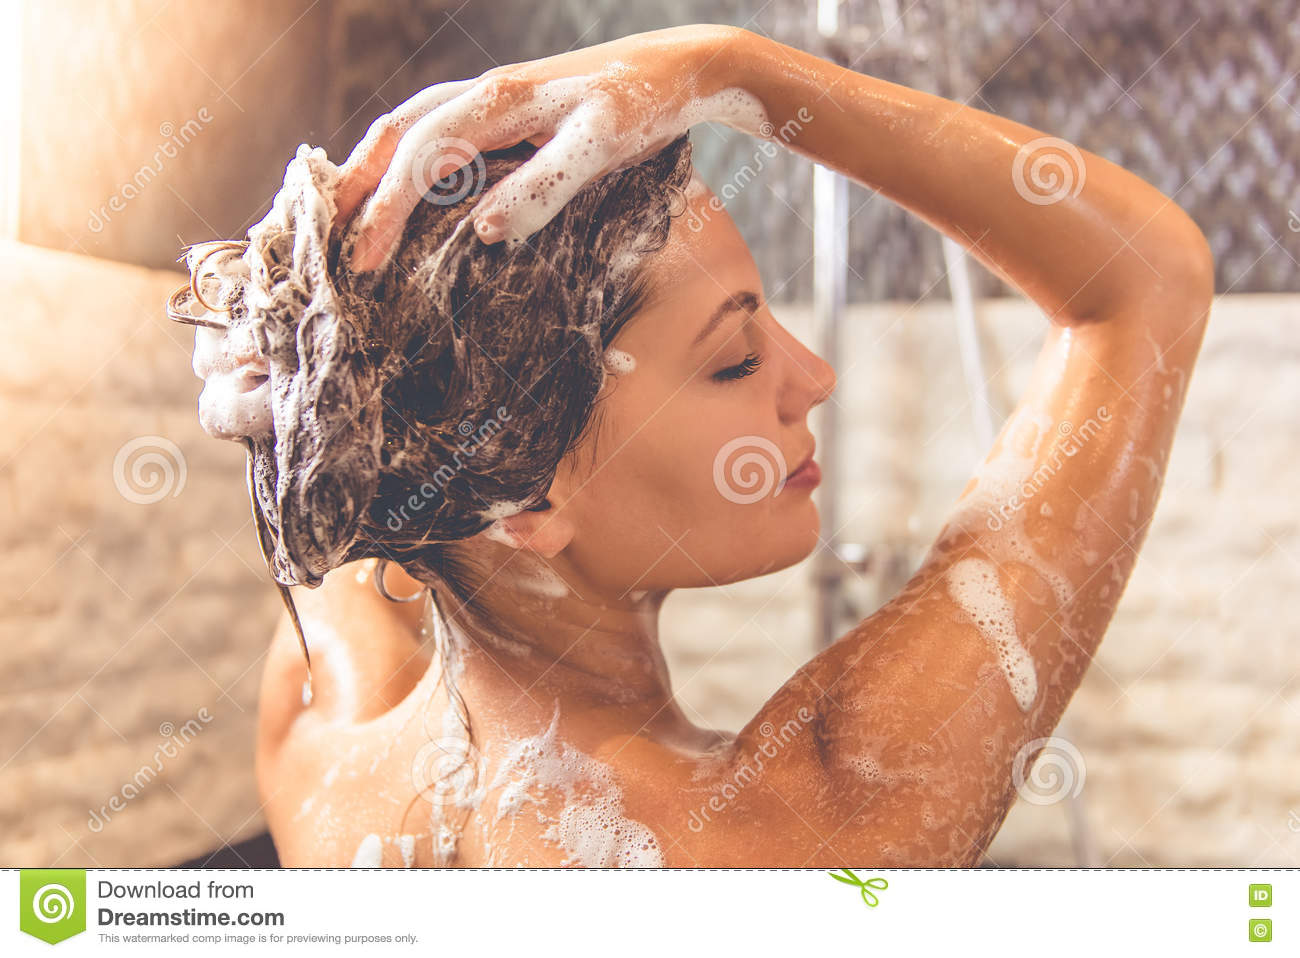 Beautiful Woman Taking Shower Stock Photo - Image of bare, indoors ...